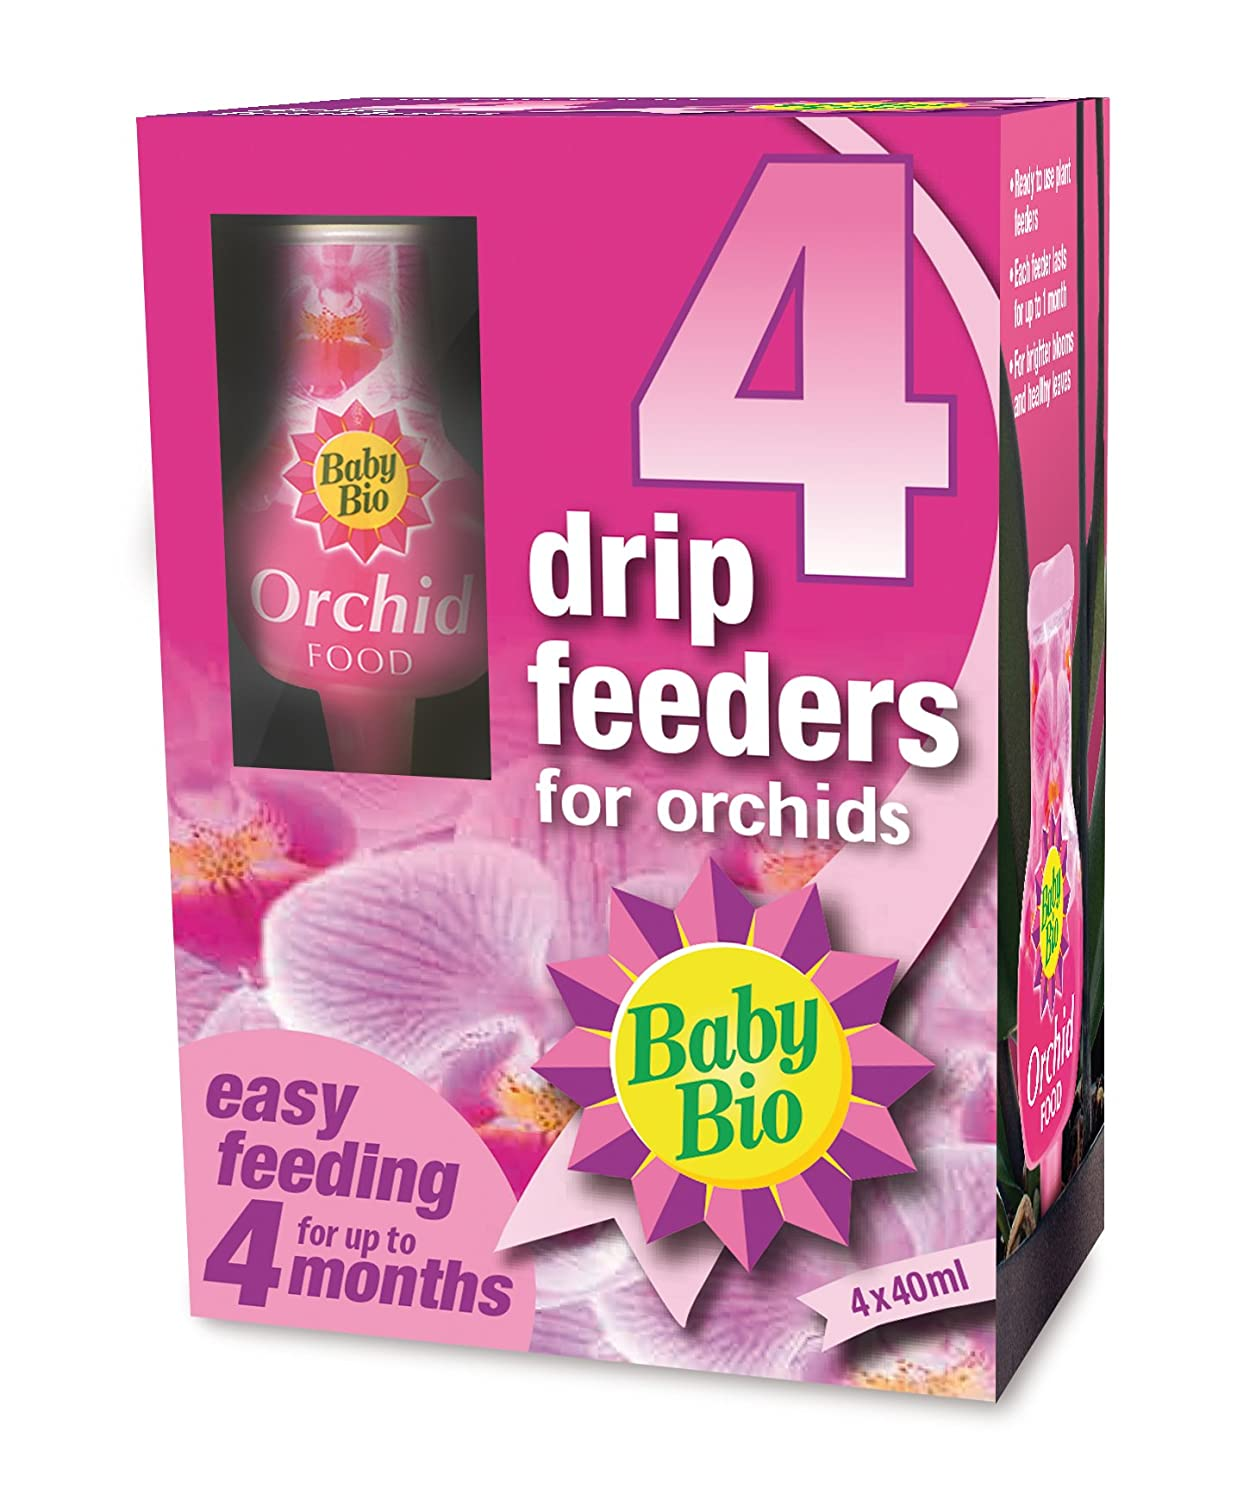 Baby Bio Orchid Drip Feeders, Ready to Use Plant Feed, 4 x 40 ml SBM Life Science 80949014